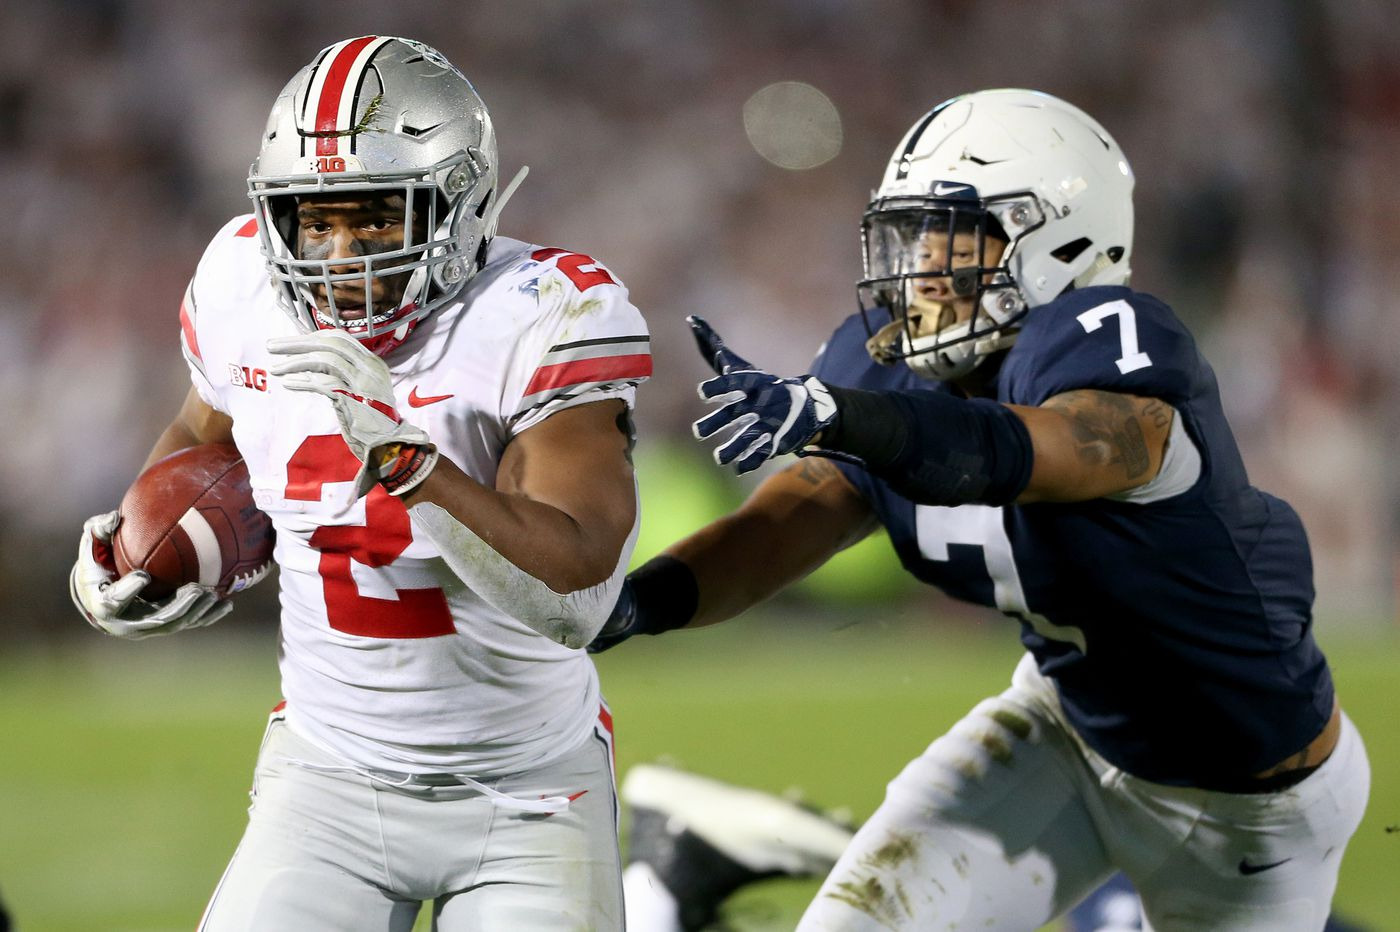 aeaf5cdbf Penn State stunned by Ohio State s late surge in 27-26 Big Ten rivalry loss  at Beaver Stadium